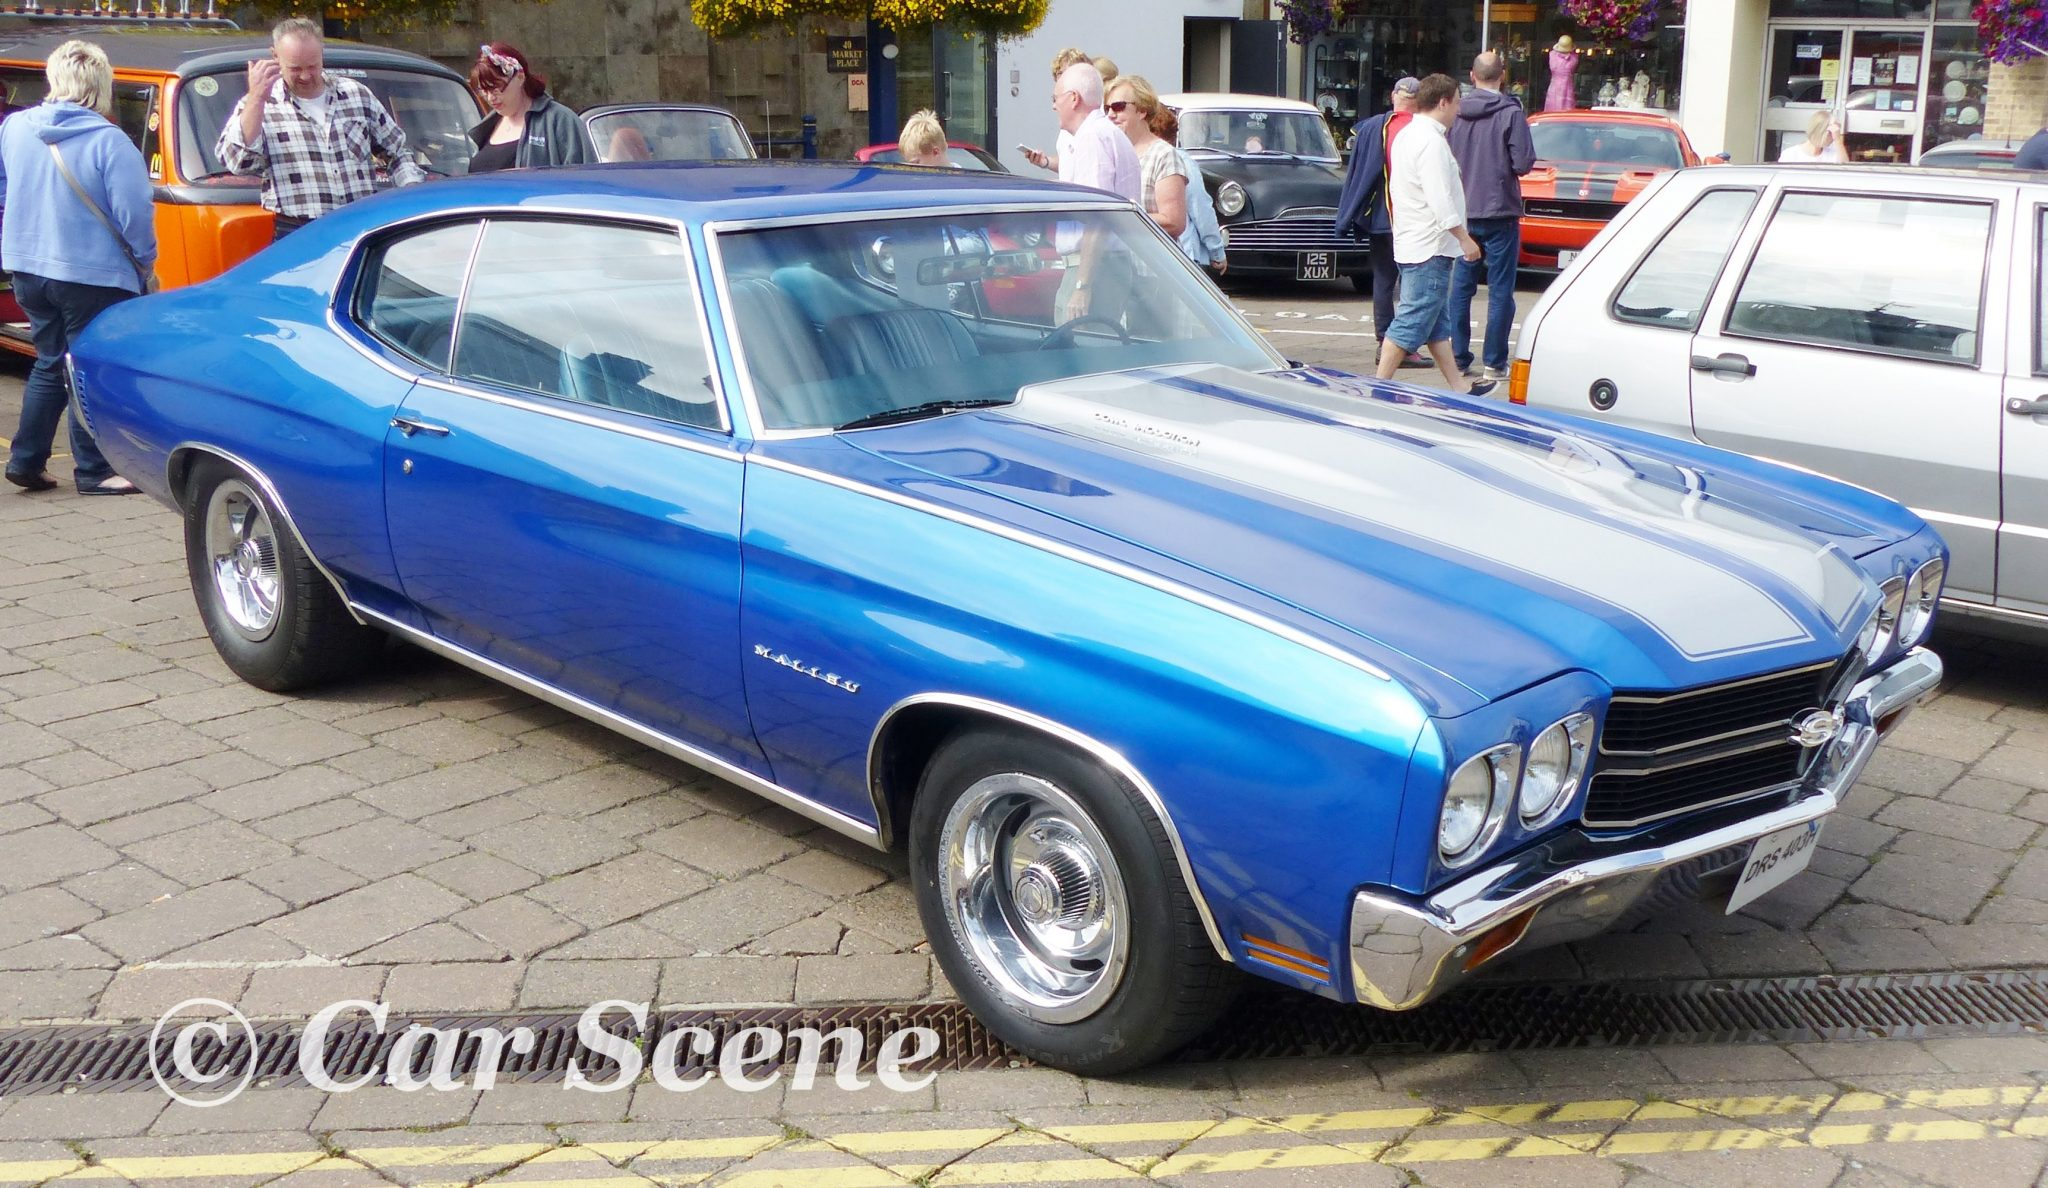 1972 Chevrolet Chevelle Malibu front three quarters view